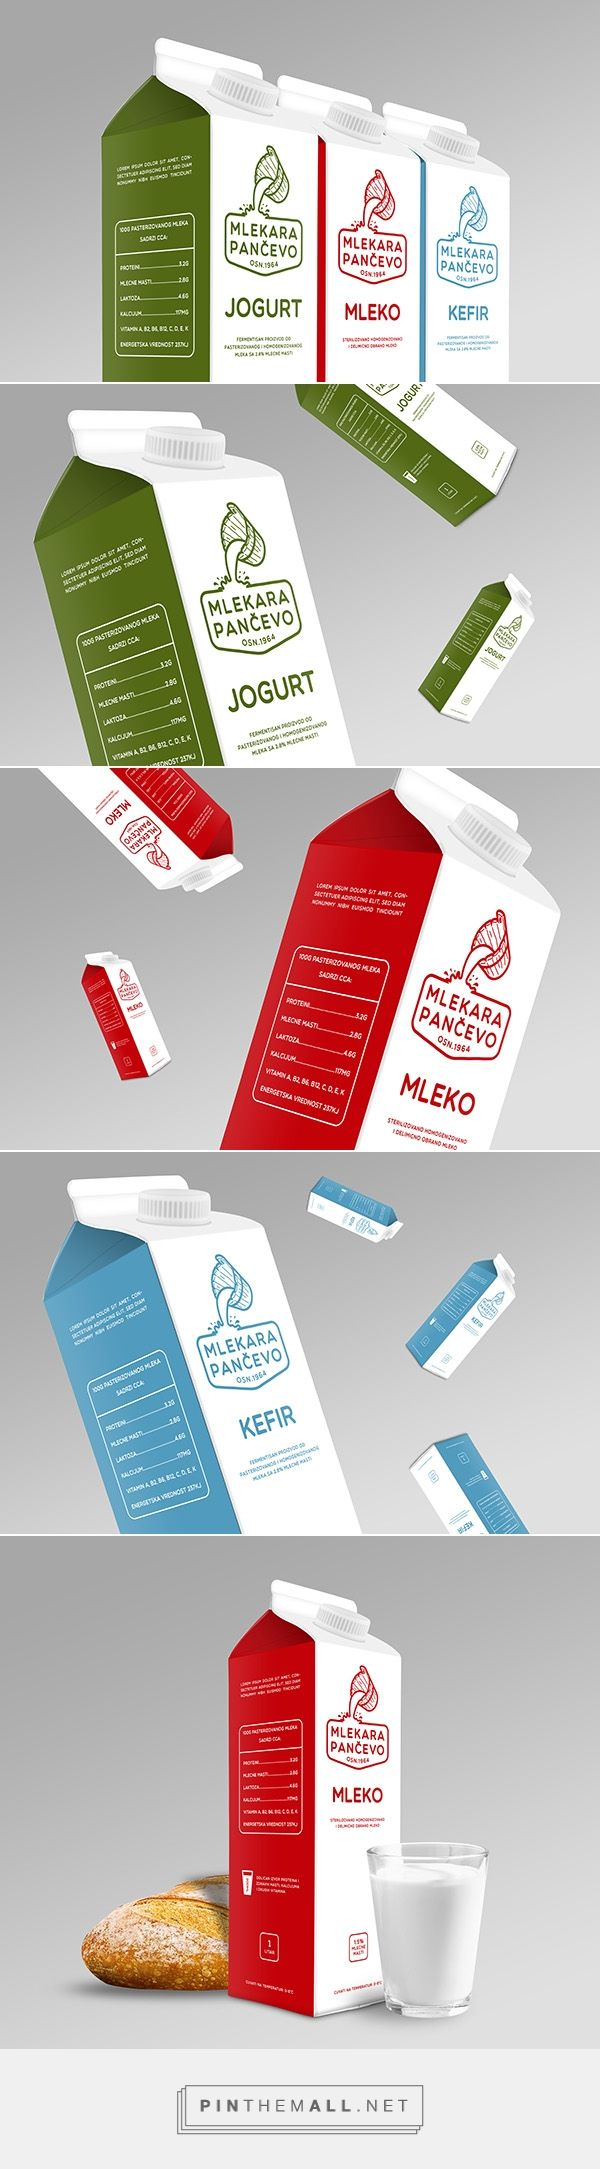 Milk - packaging                                                                                                                                                      More